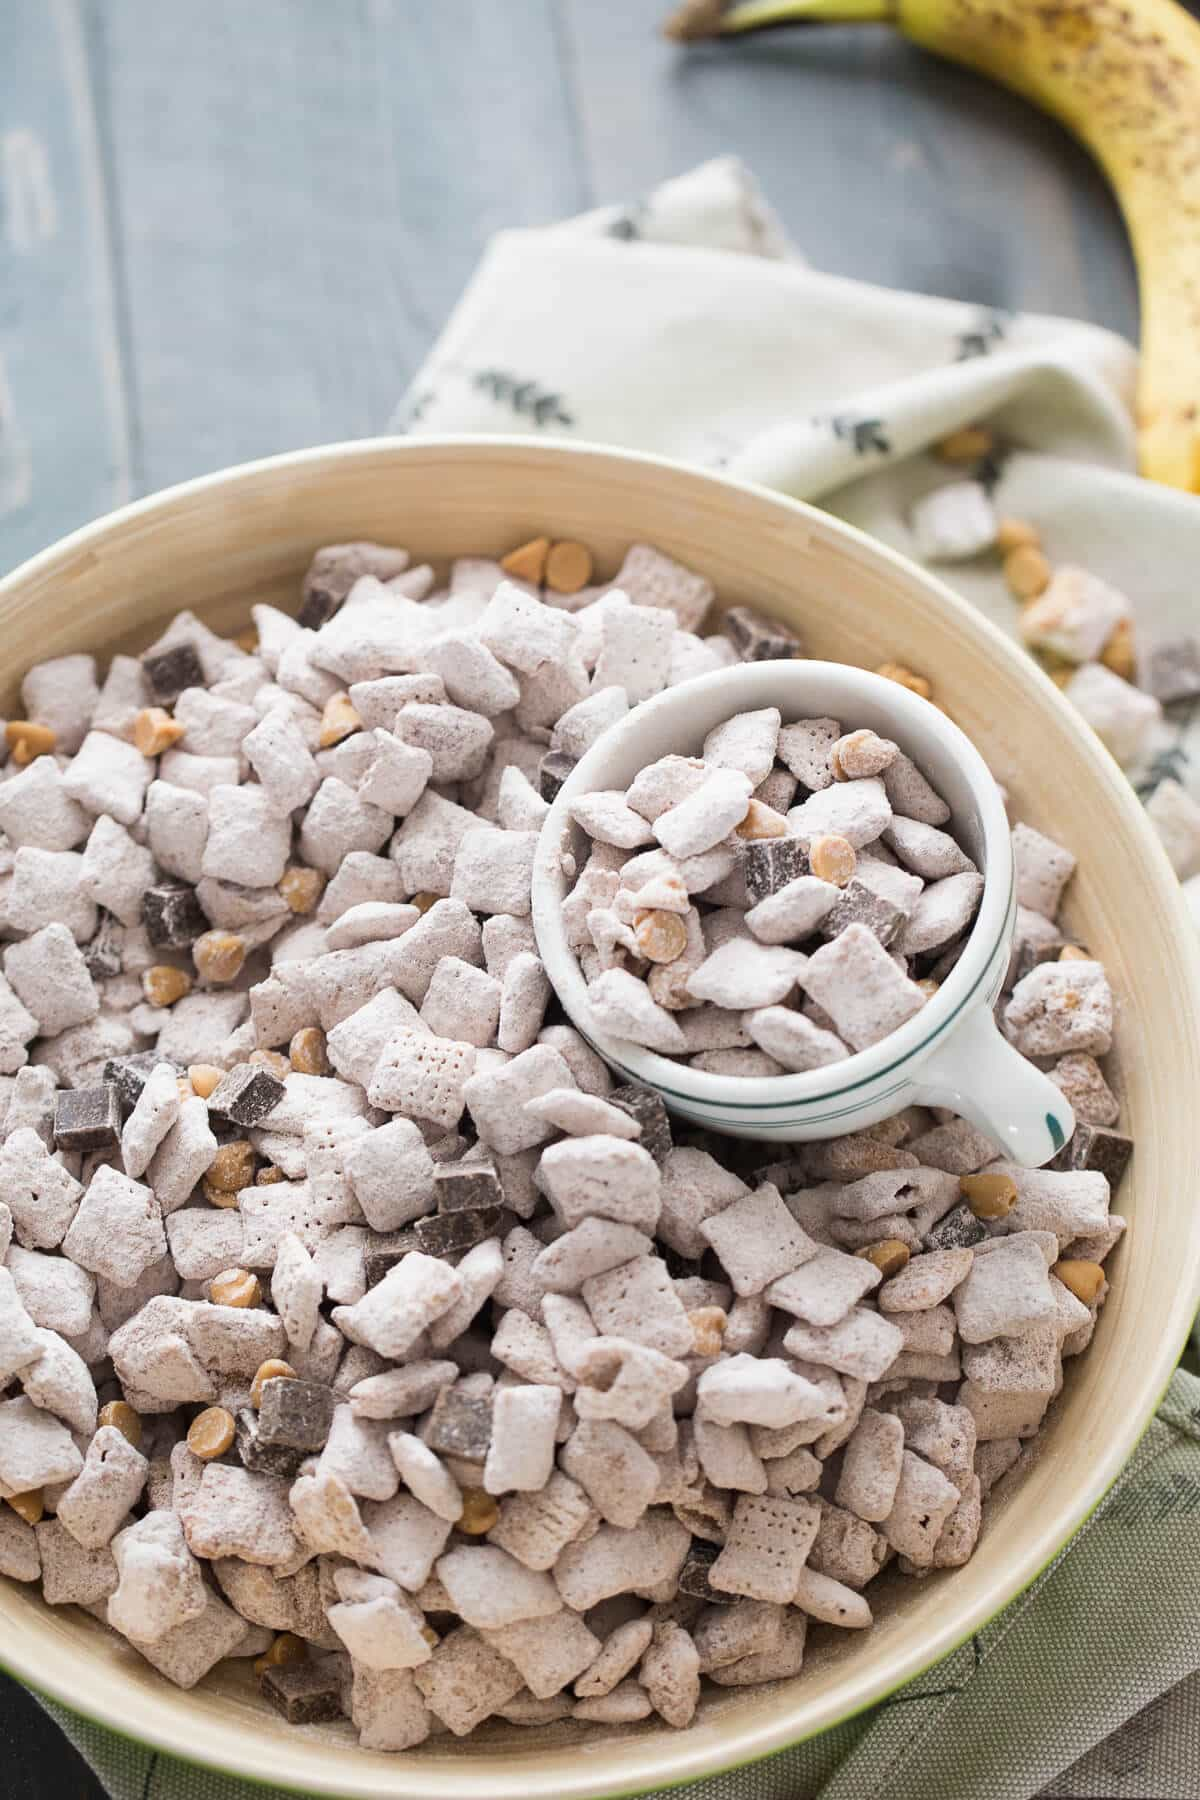 This chunky monkey flavored snack mix is absolutely addicting! I would be sure to make a double batch!